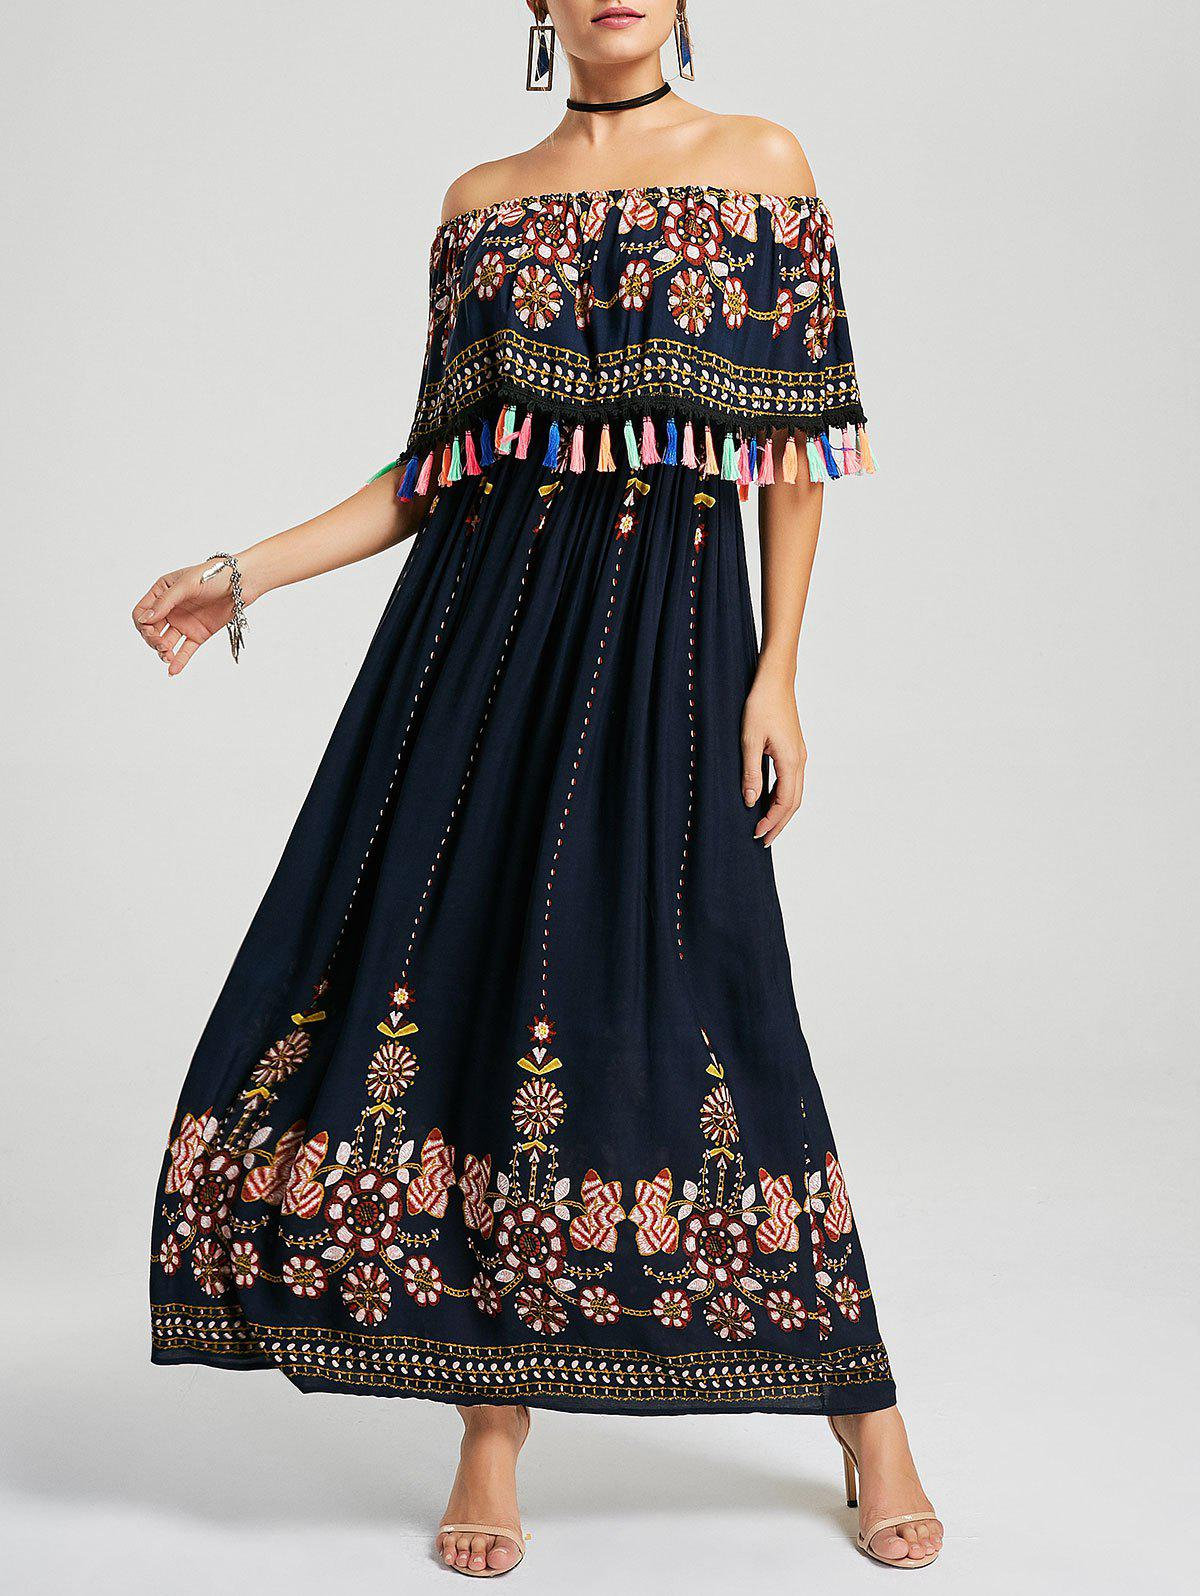 Off Shoulder Floral Summer Maxi Tassel DressWOMEN<br><br>Size: XL; Color: PURPLISH BLUE; Style: Bohemian; Material: Polyester; Silhouette: A-Line; Dresses Length: Ankle-Length; Neckline: Off The Shoulder; Sleeve Length: Half Sleeves; Pattern Type: Floral; With Belt: No; Season: Summer; Weight: 0.4200kg; Package Contents: 1 x Dress;